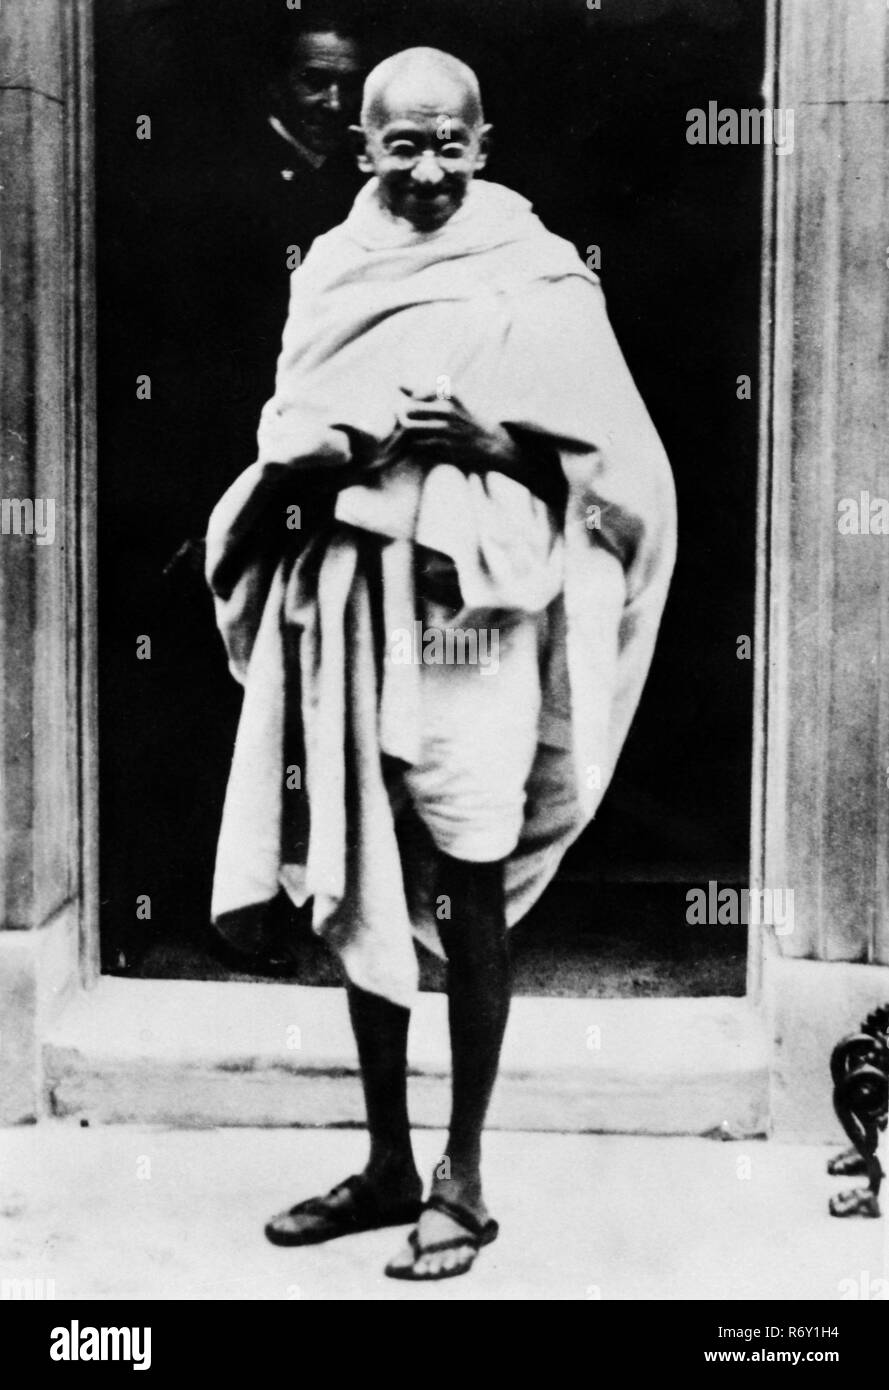 Mahatma Gandhi (1869-1948) Leader Of India's Campaign for Home Rule MODEL RELEASE NOT AVAILABLE - Stock Image